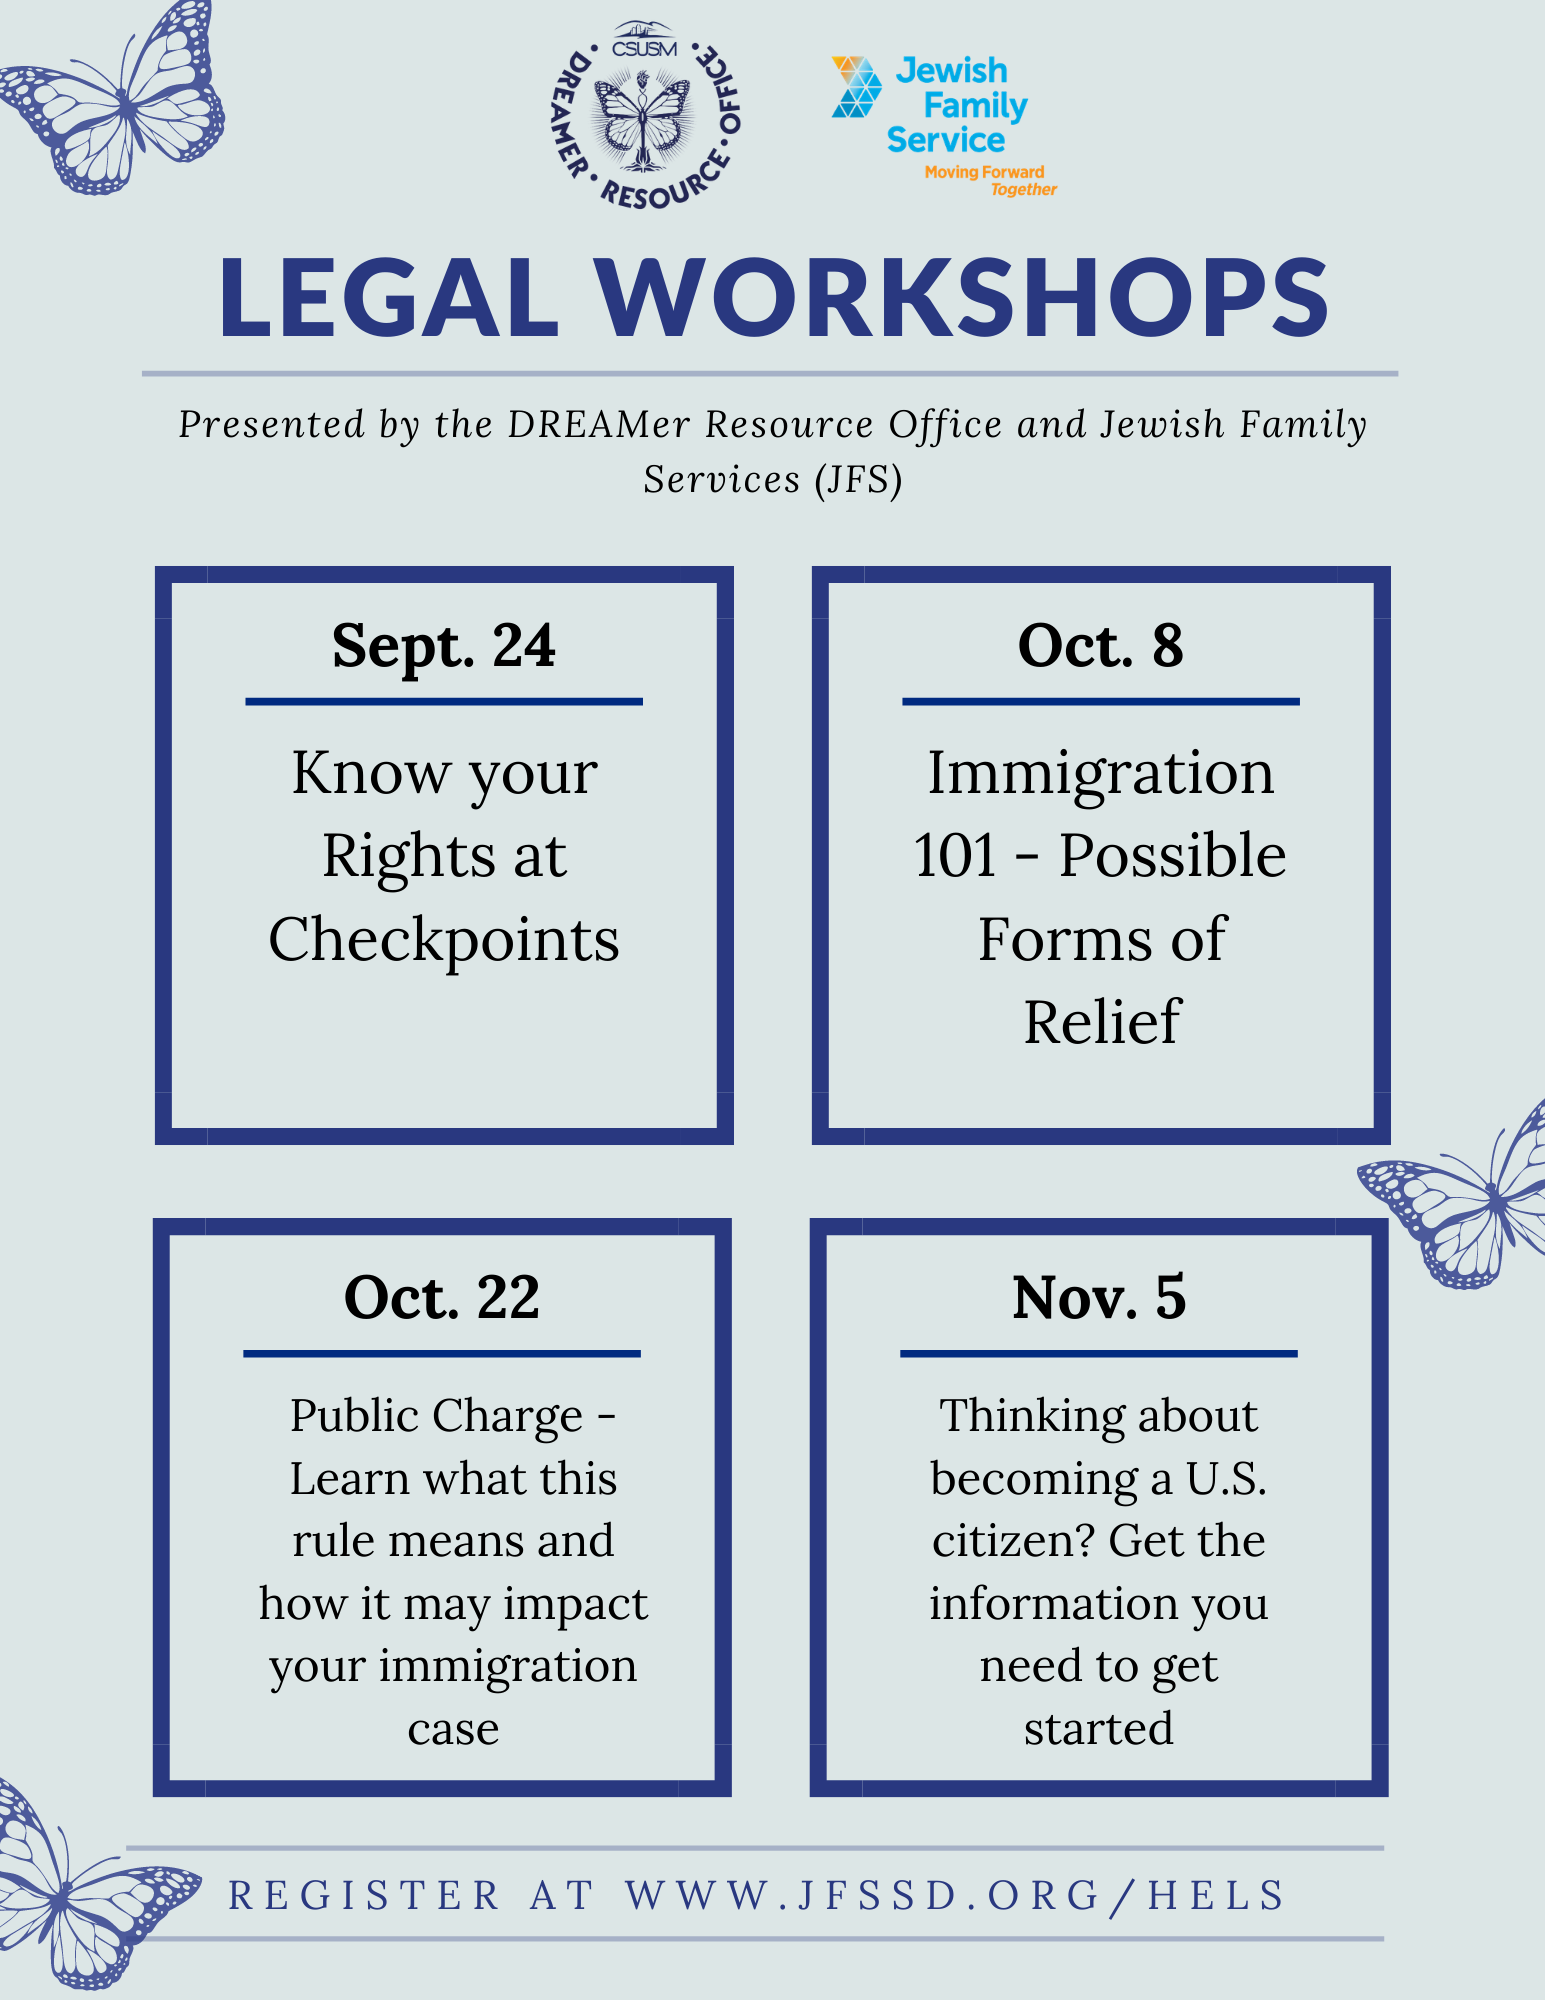 Know your Rights Workshop Flyer for Fall of 2020